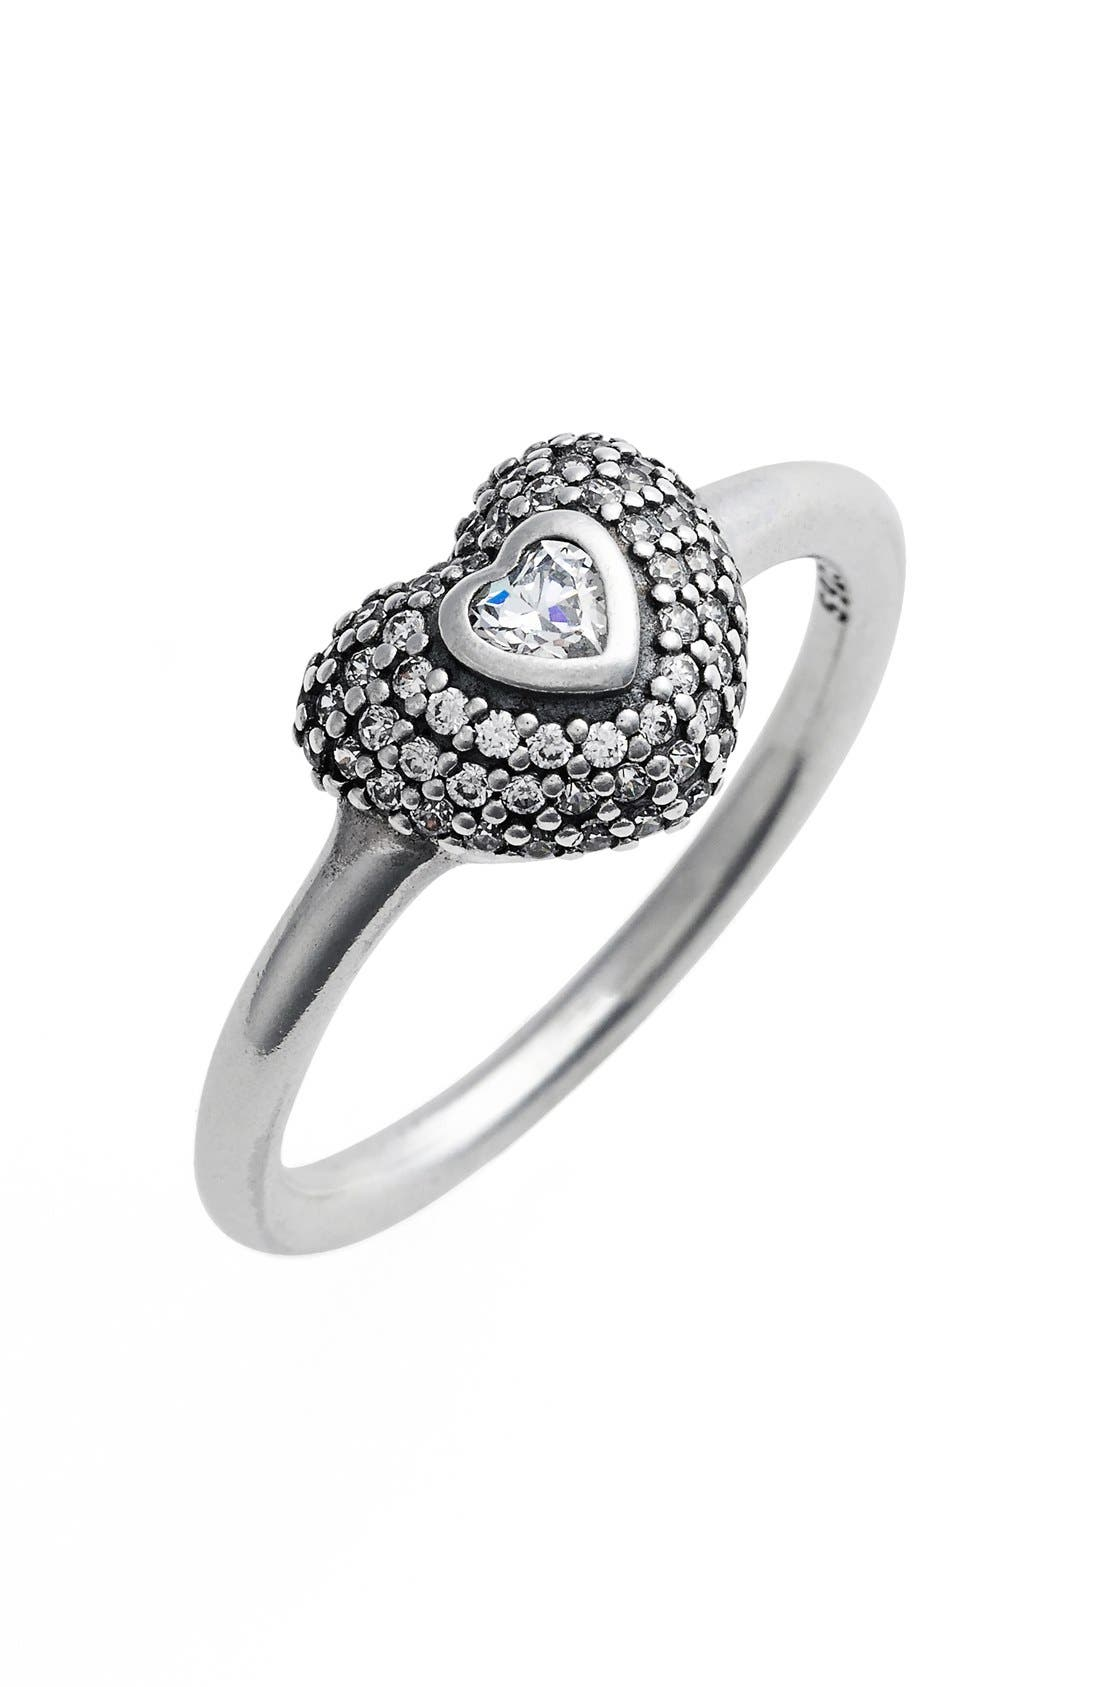 Alternate Image 1 Selected - PANDORA 'In My Heart' Ring